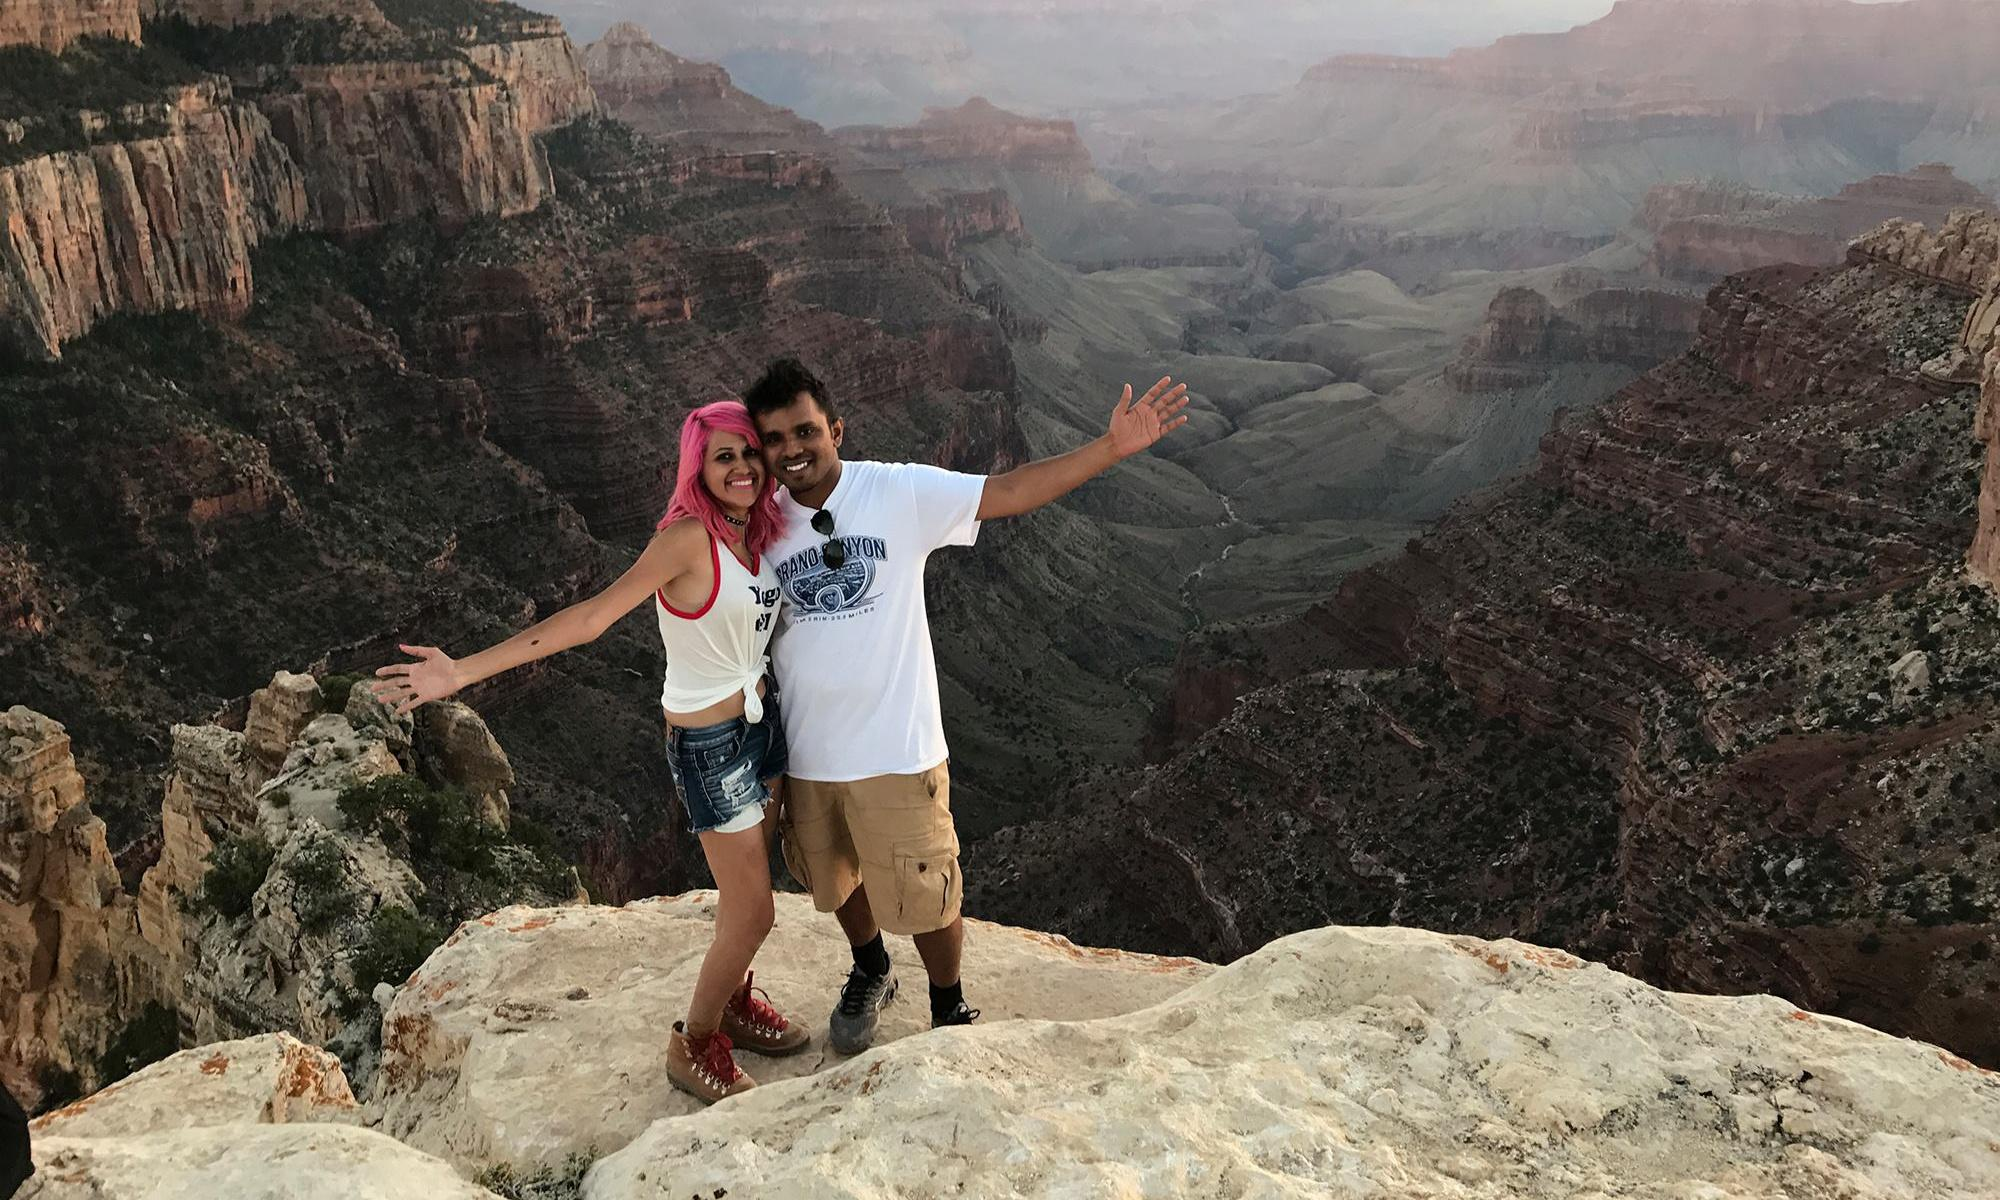 'Is our life just worth a photo?': the tragic death of a couple in Yosemite